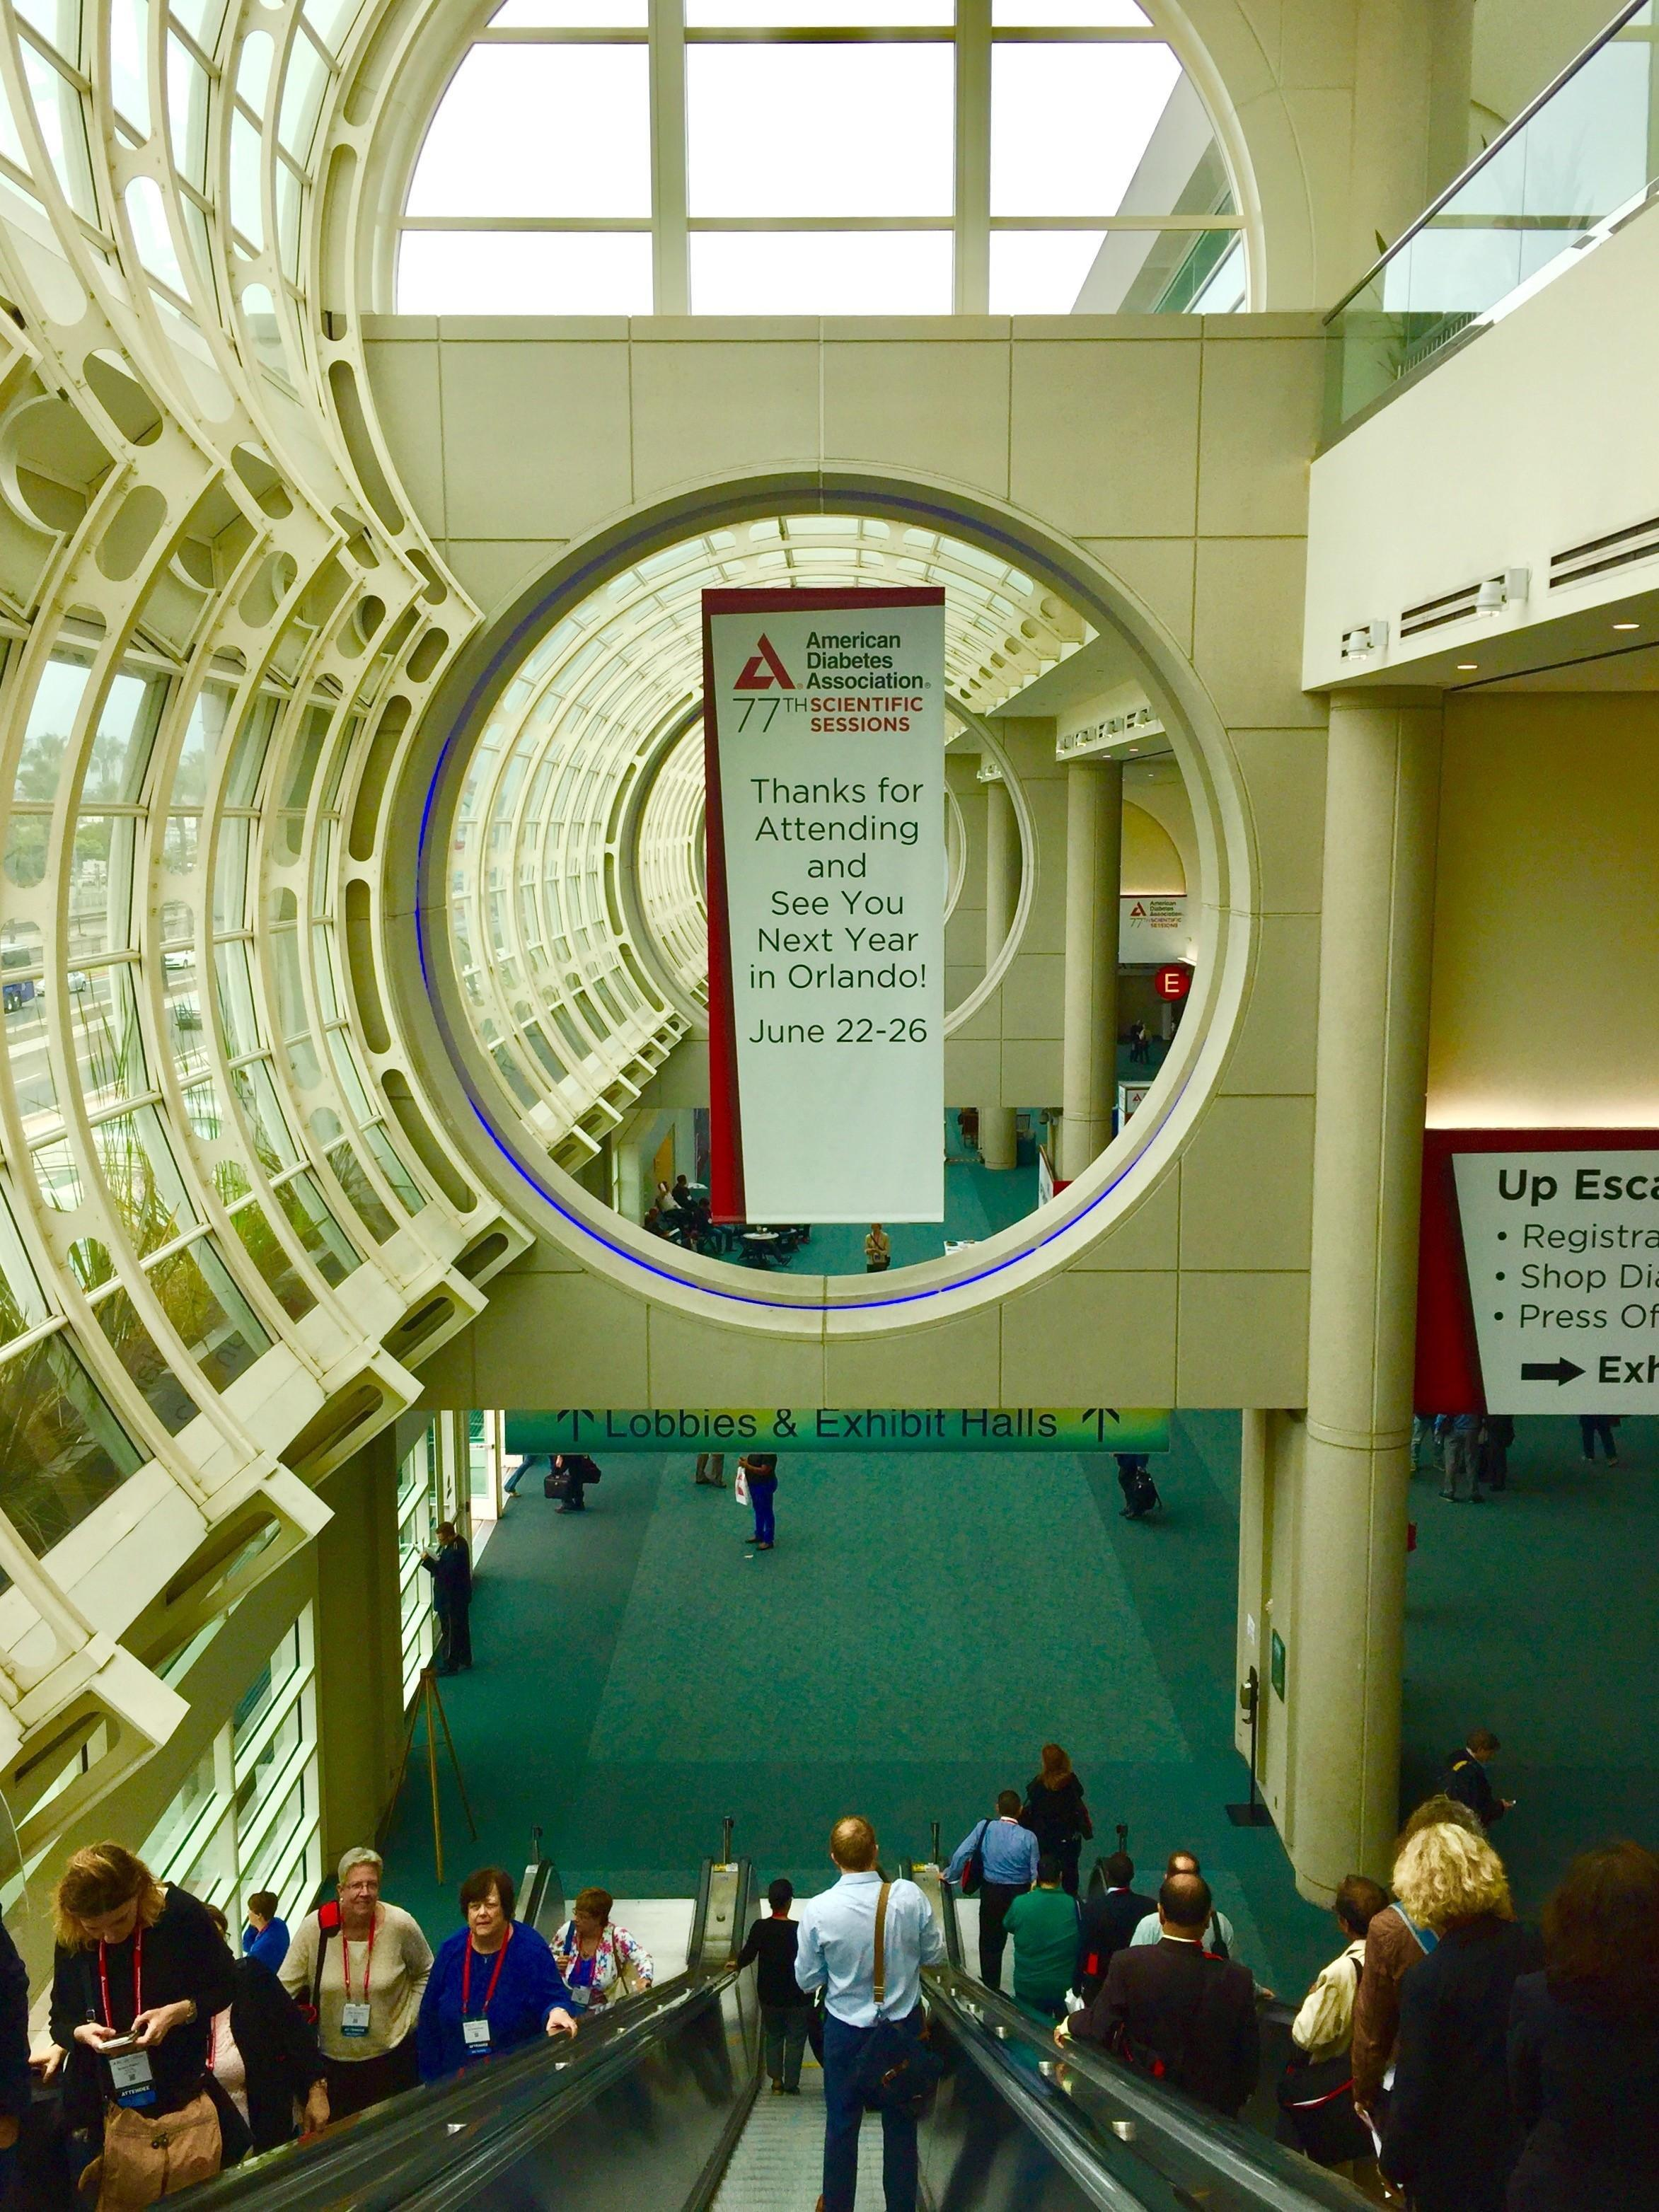 Highlights from American Diabetes Association 2017